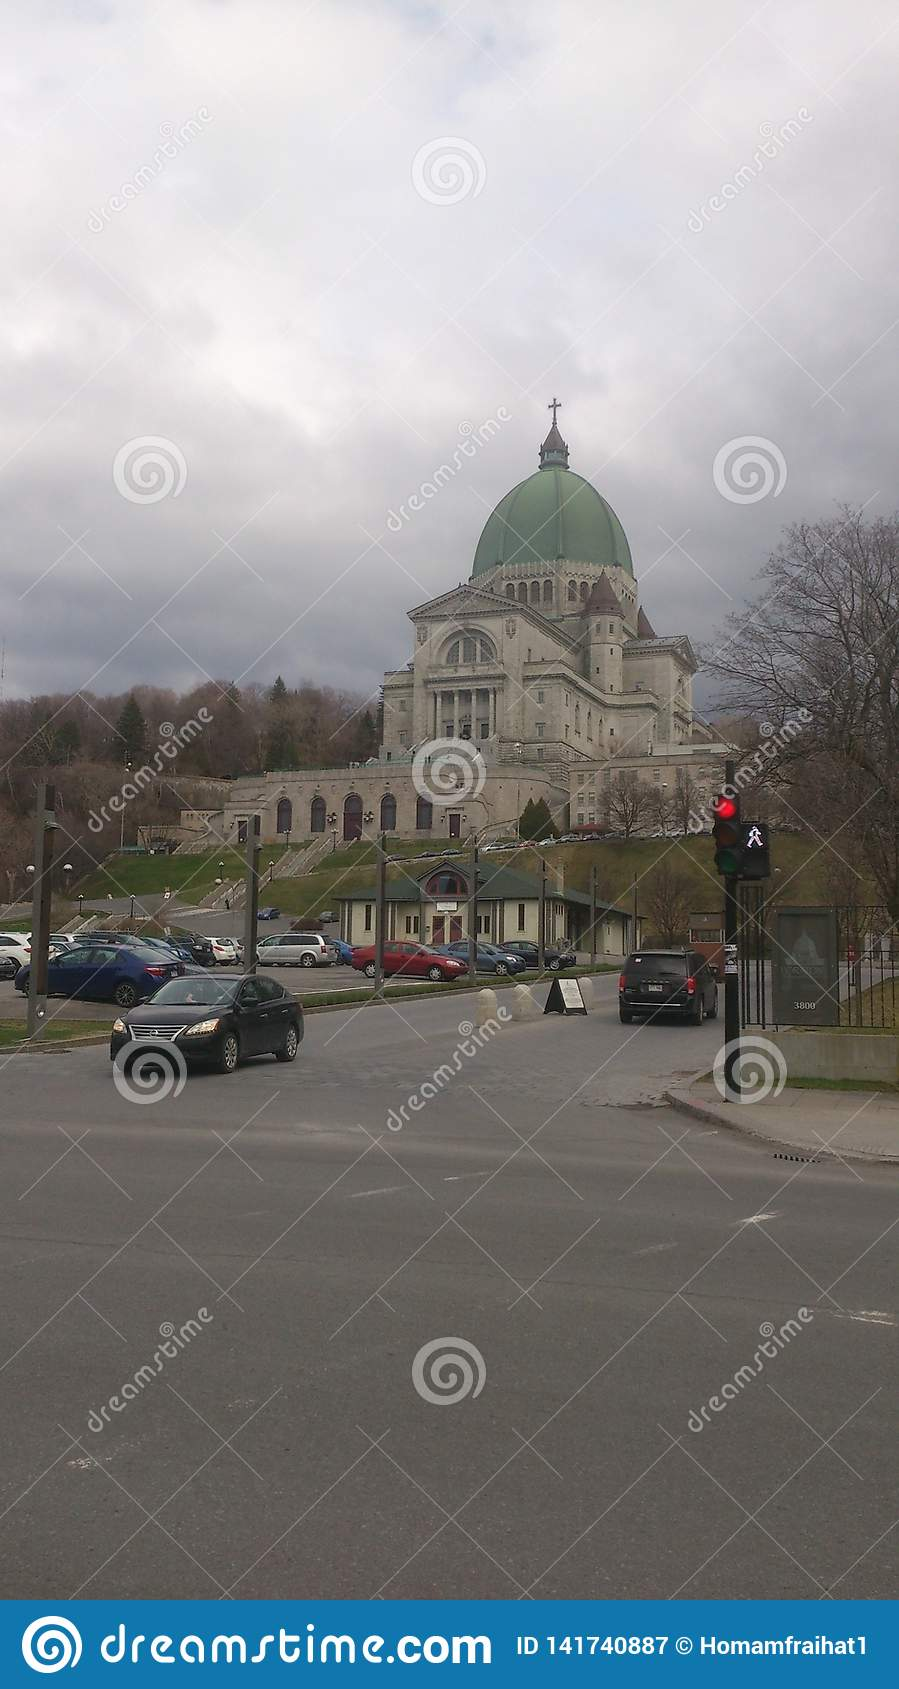 Largest church in Canada Montreal the oratory of st Joseph